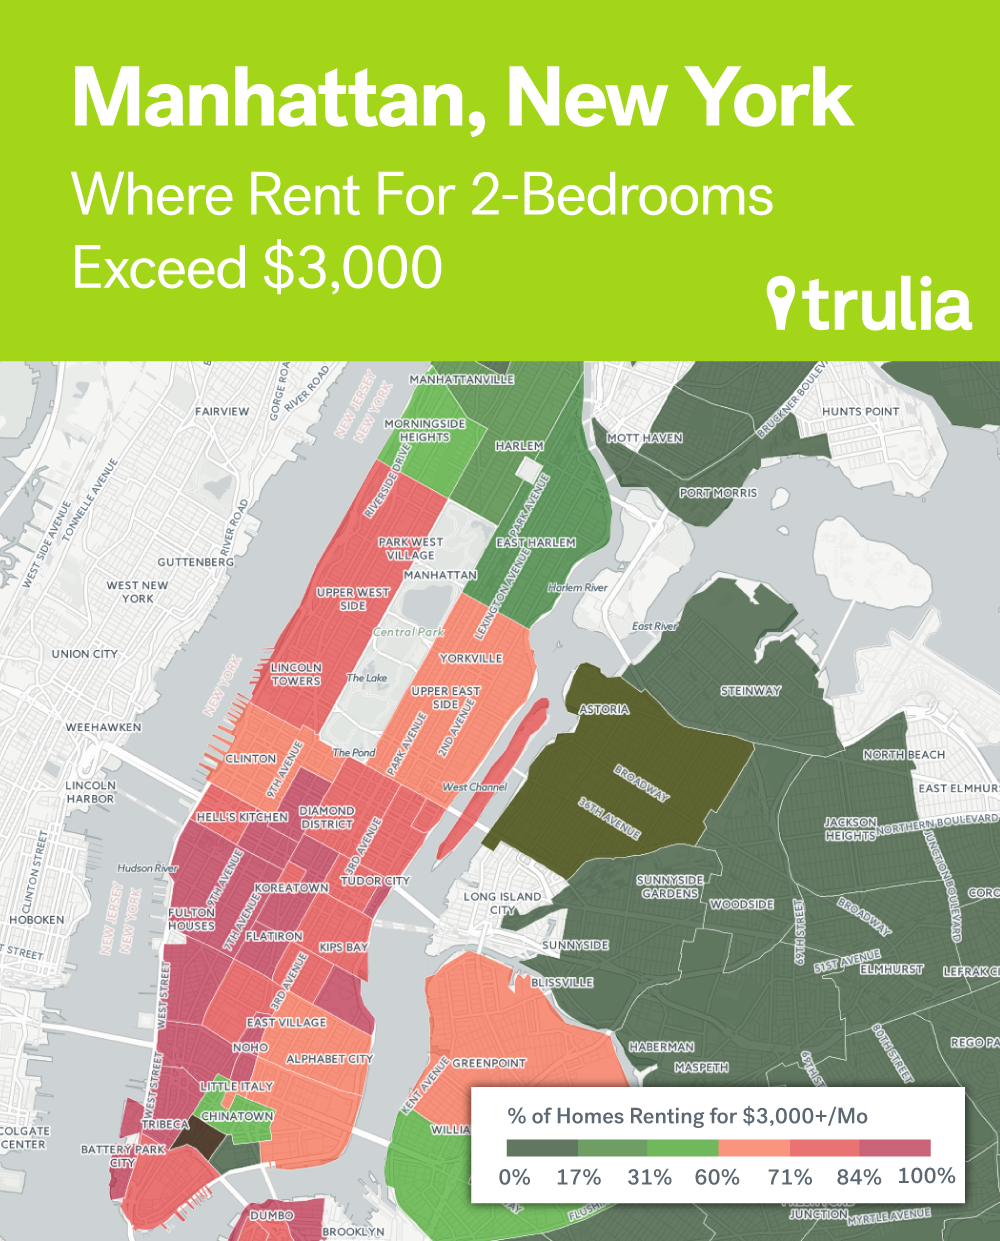 Manhattan Neighborhoods with the Most Expensive 2 Bedroom Rentals. Where Rents Are Too Damn High   Trulia s Blog